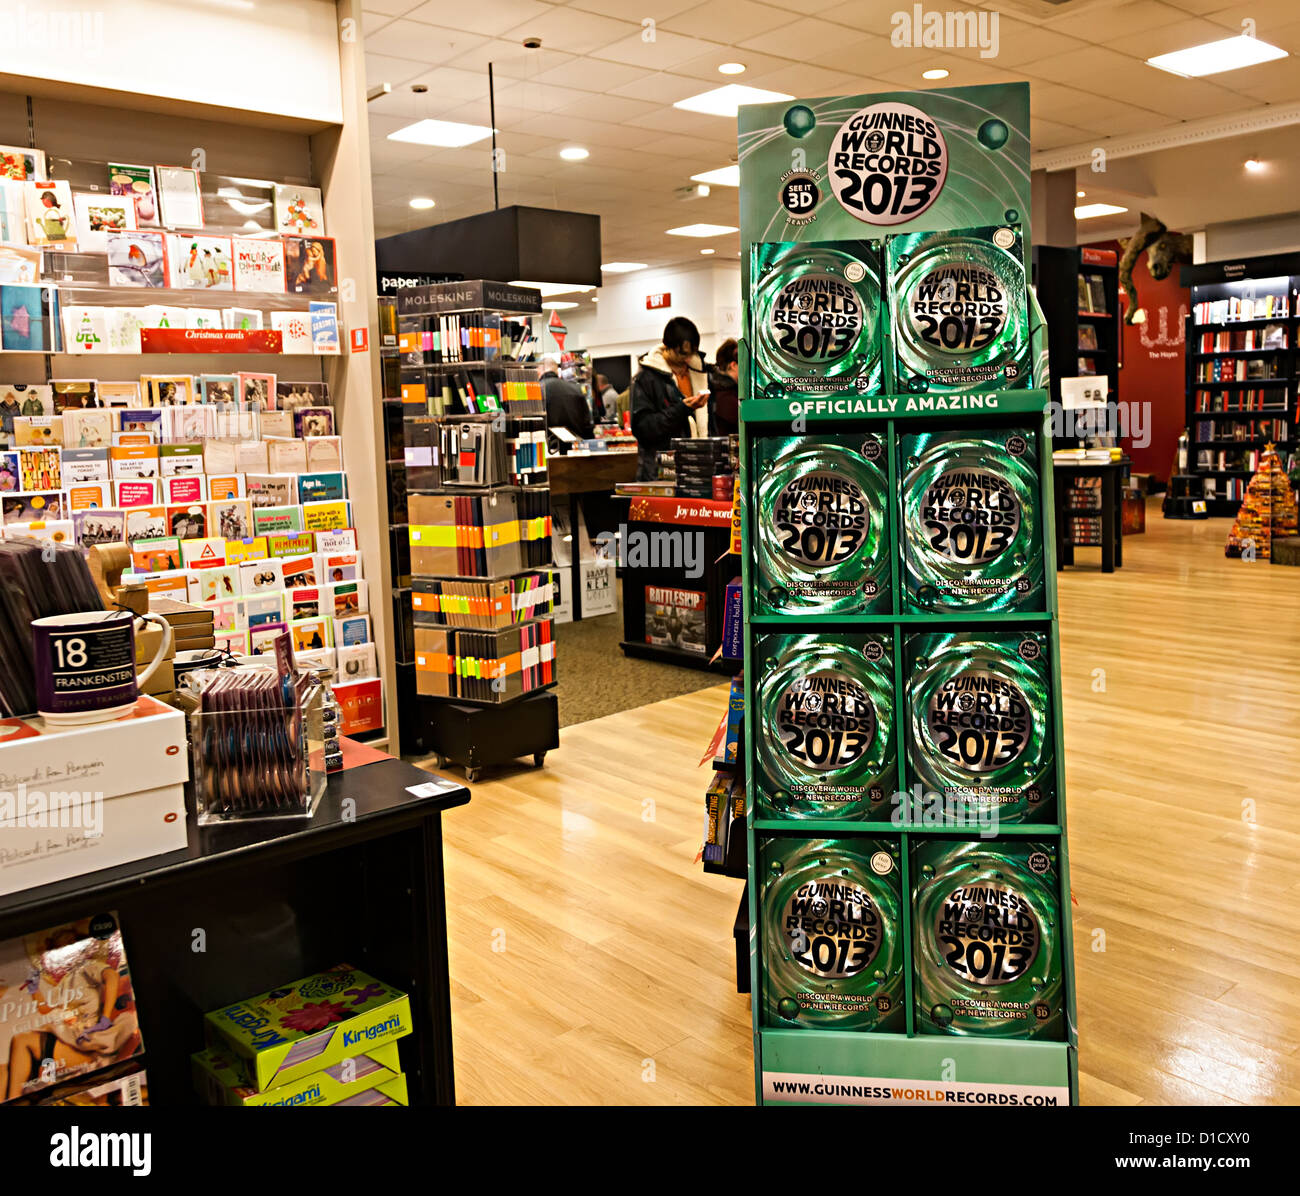 Guinness World Records 2013 book in stand on sale in shop, Cardiff, Wales, UK - Stock Image